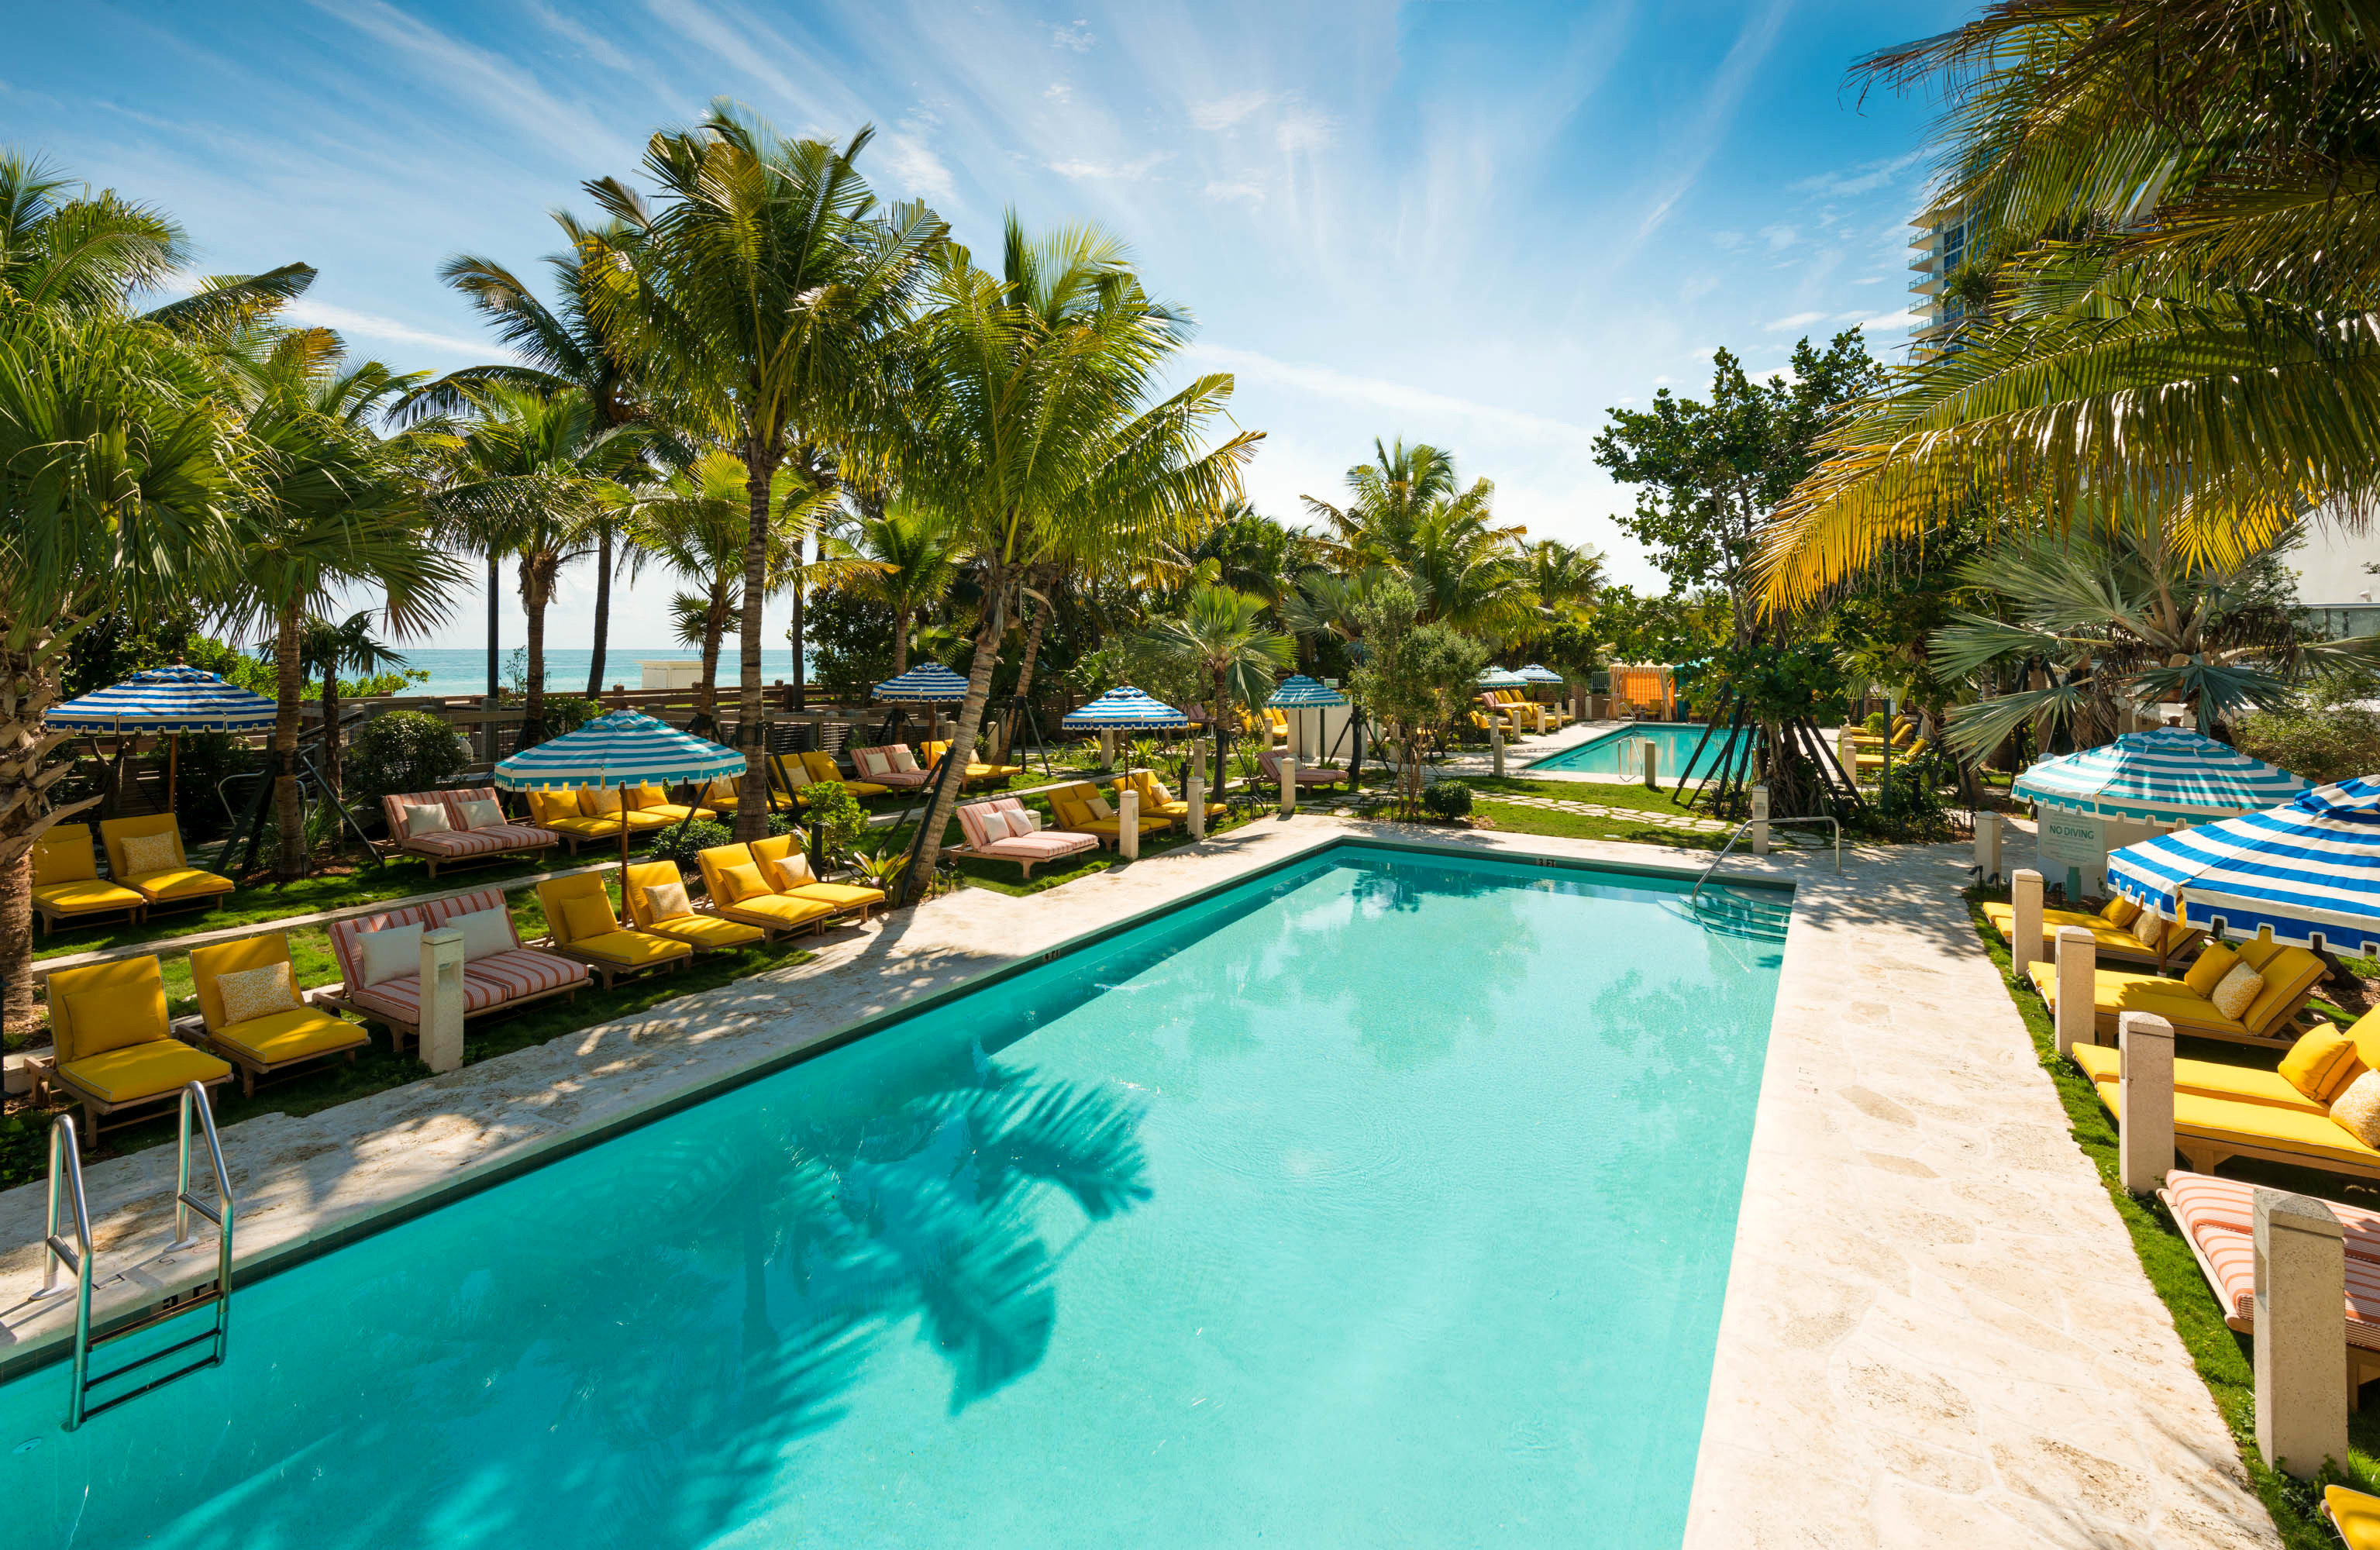 extended us gardens miamf hoteldetail suites in en cheap garden airport miami doral candlewood hotels